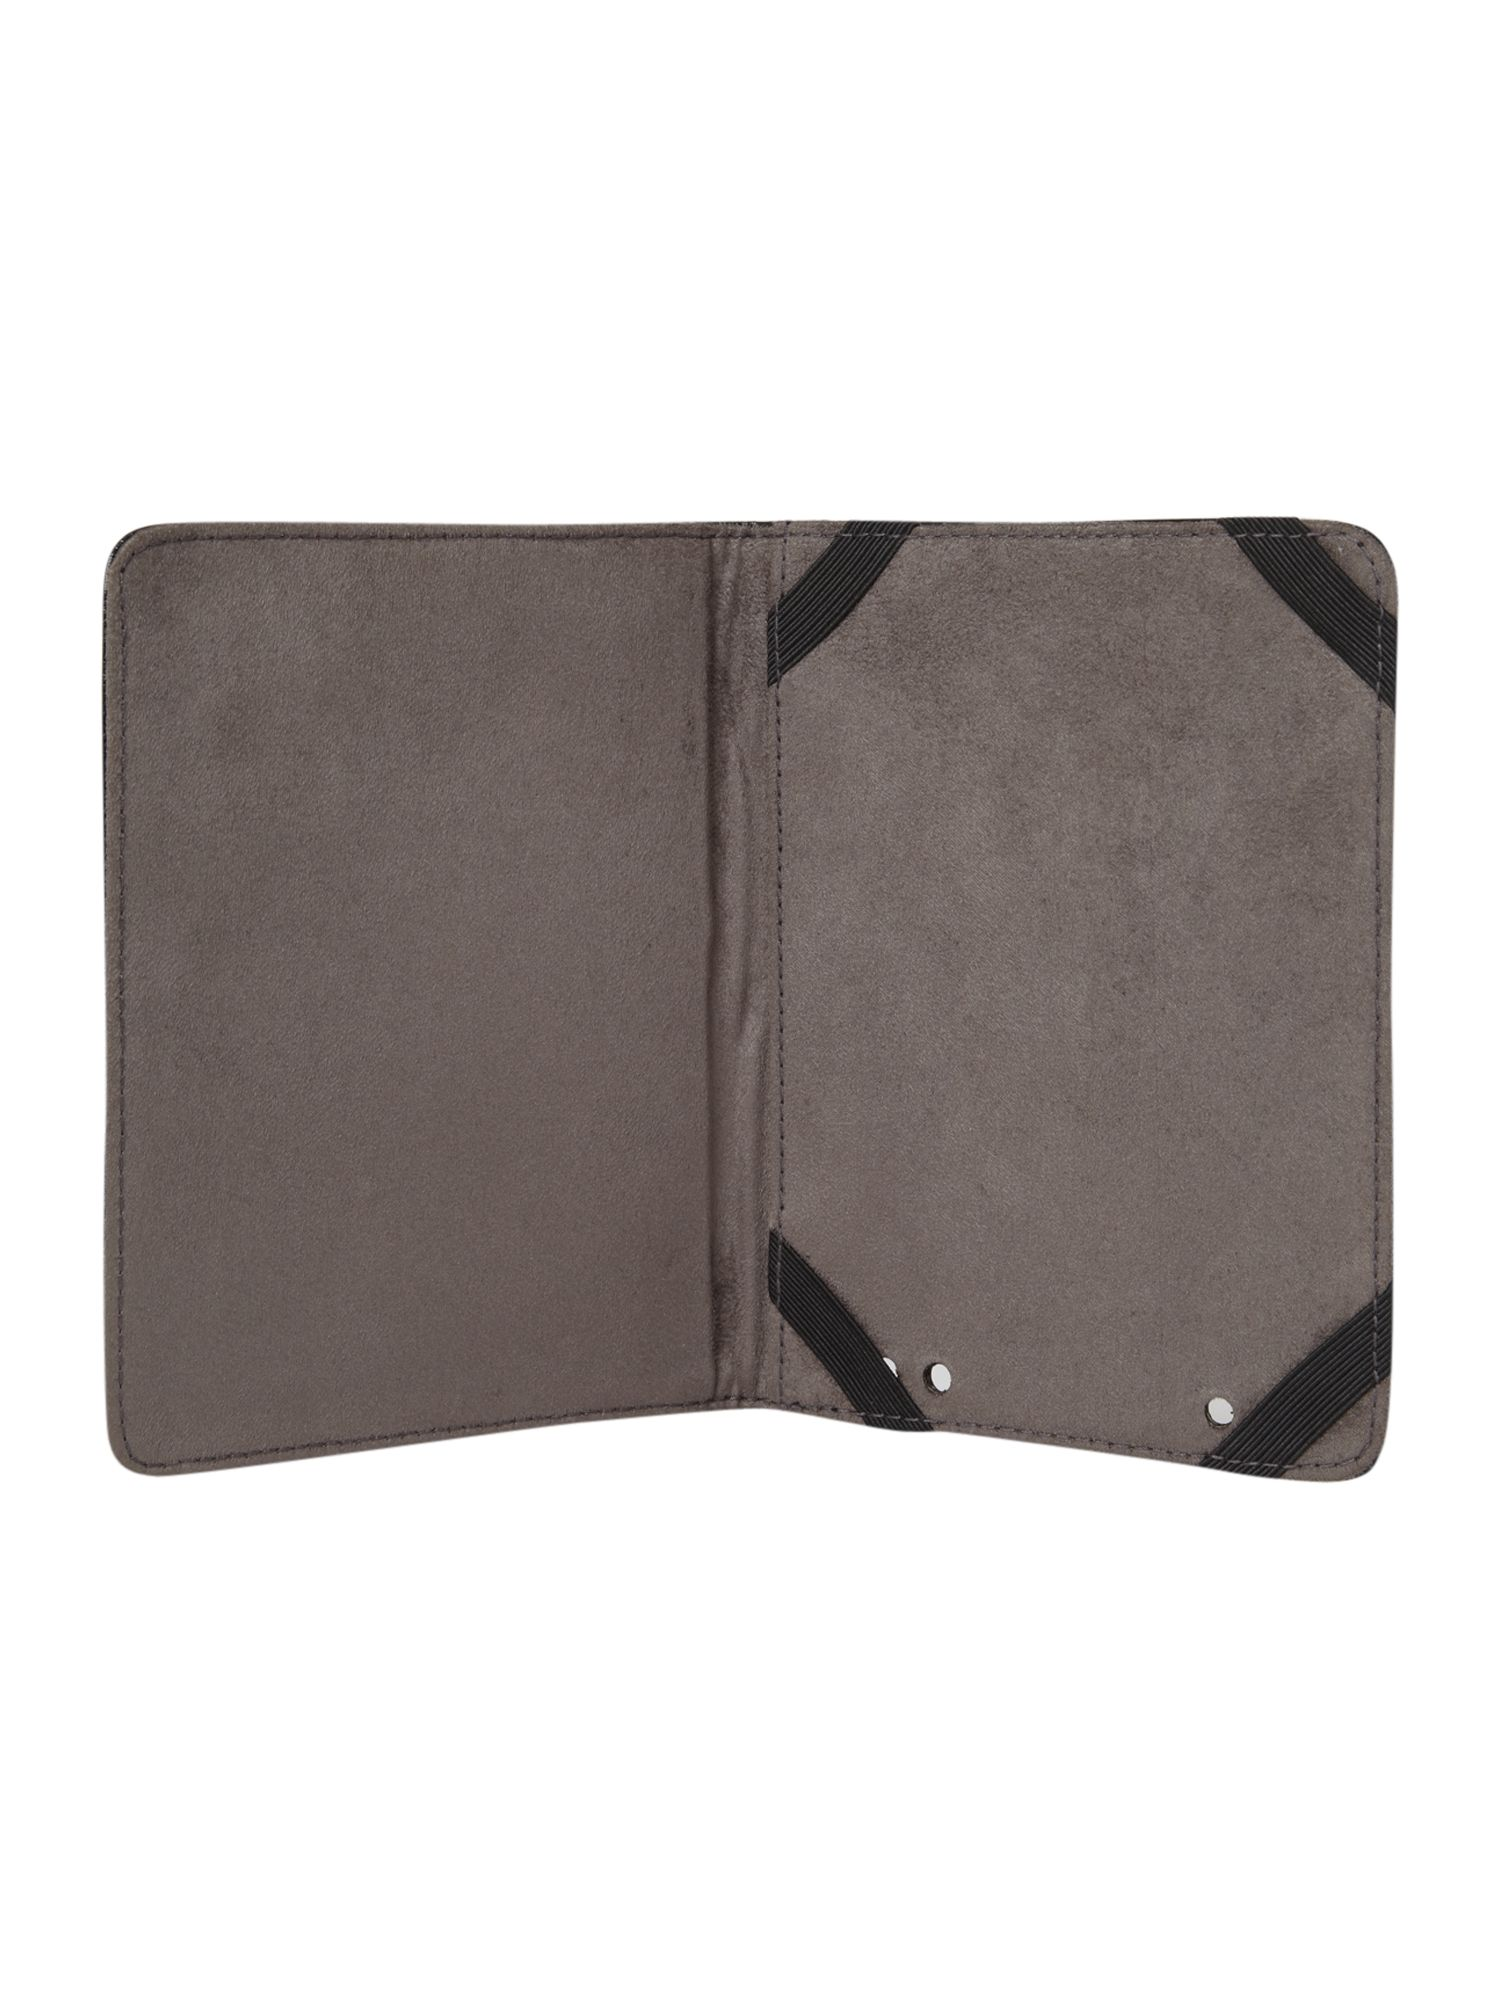 Black Leather Kindle Case